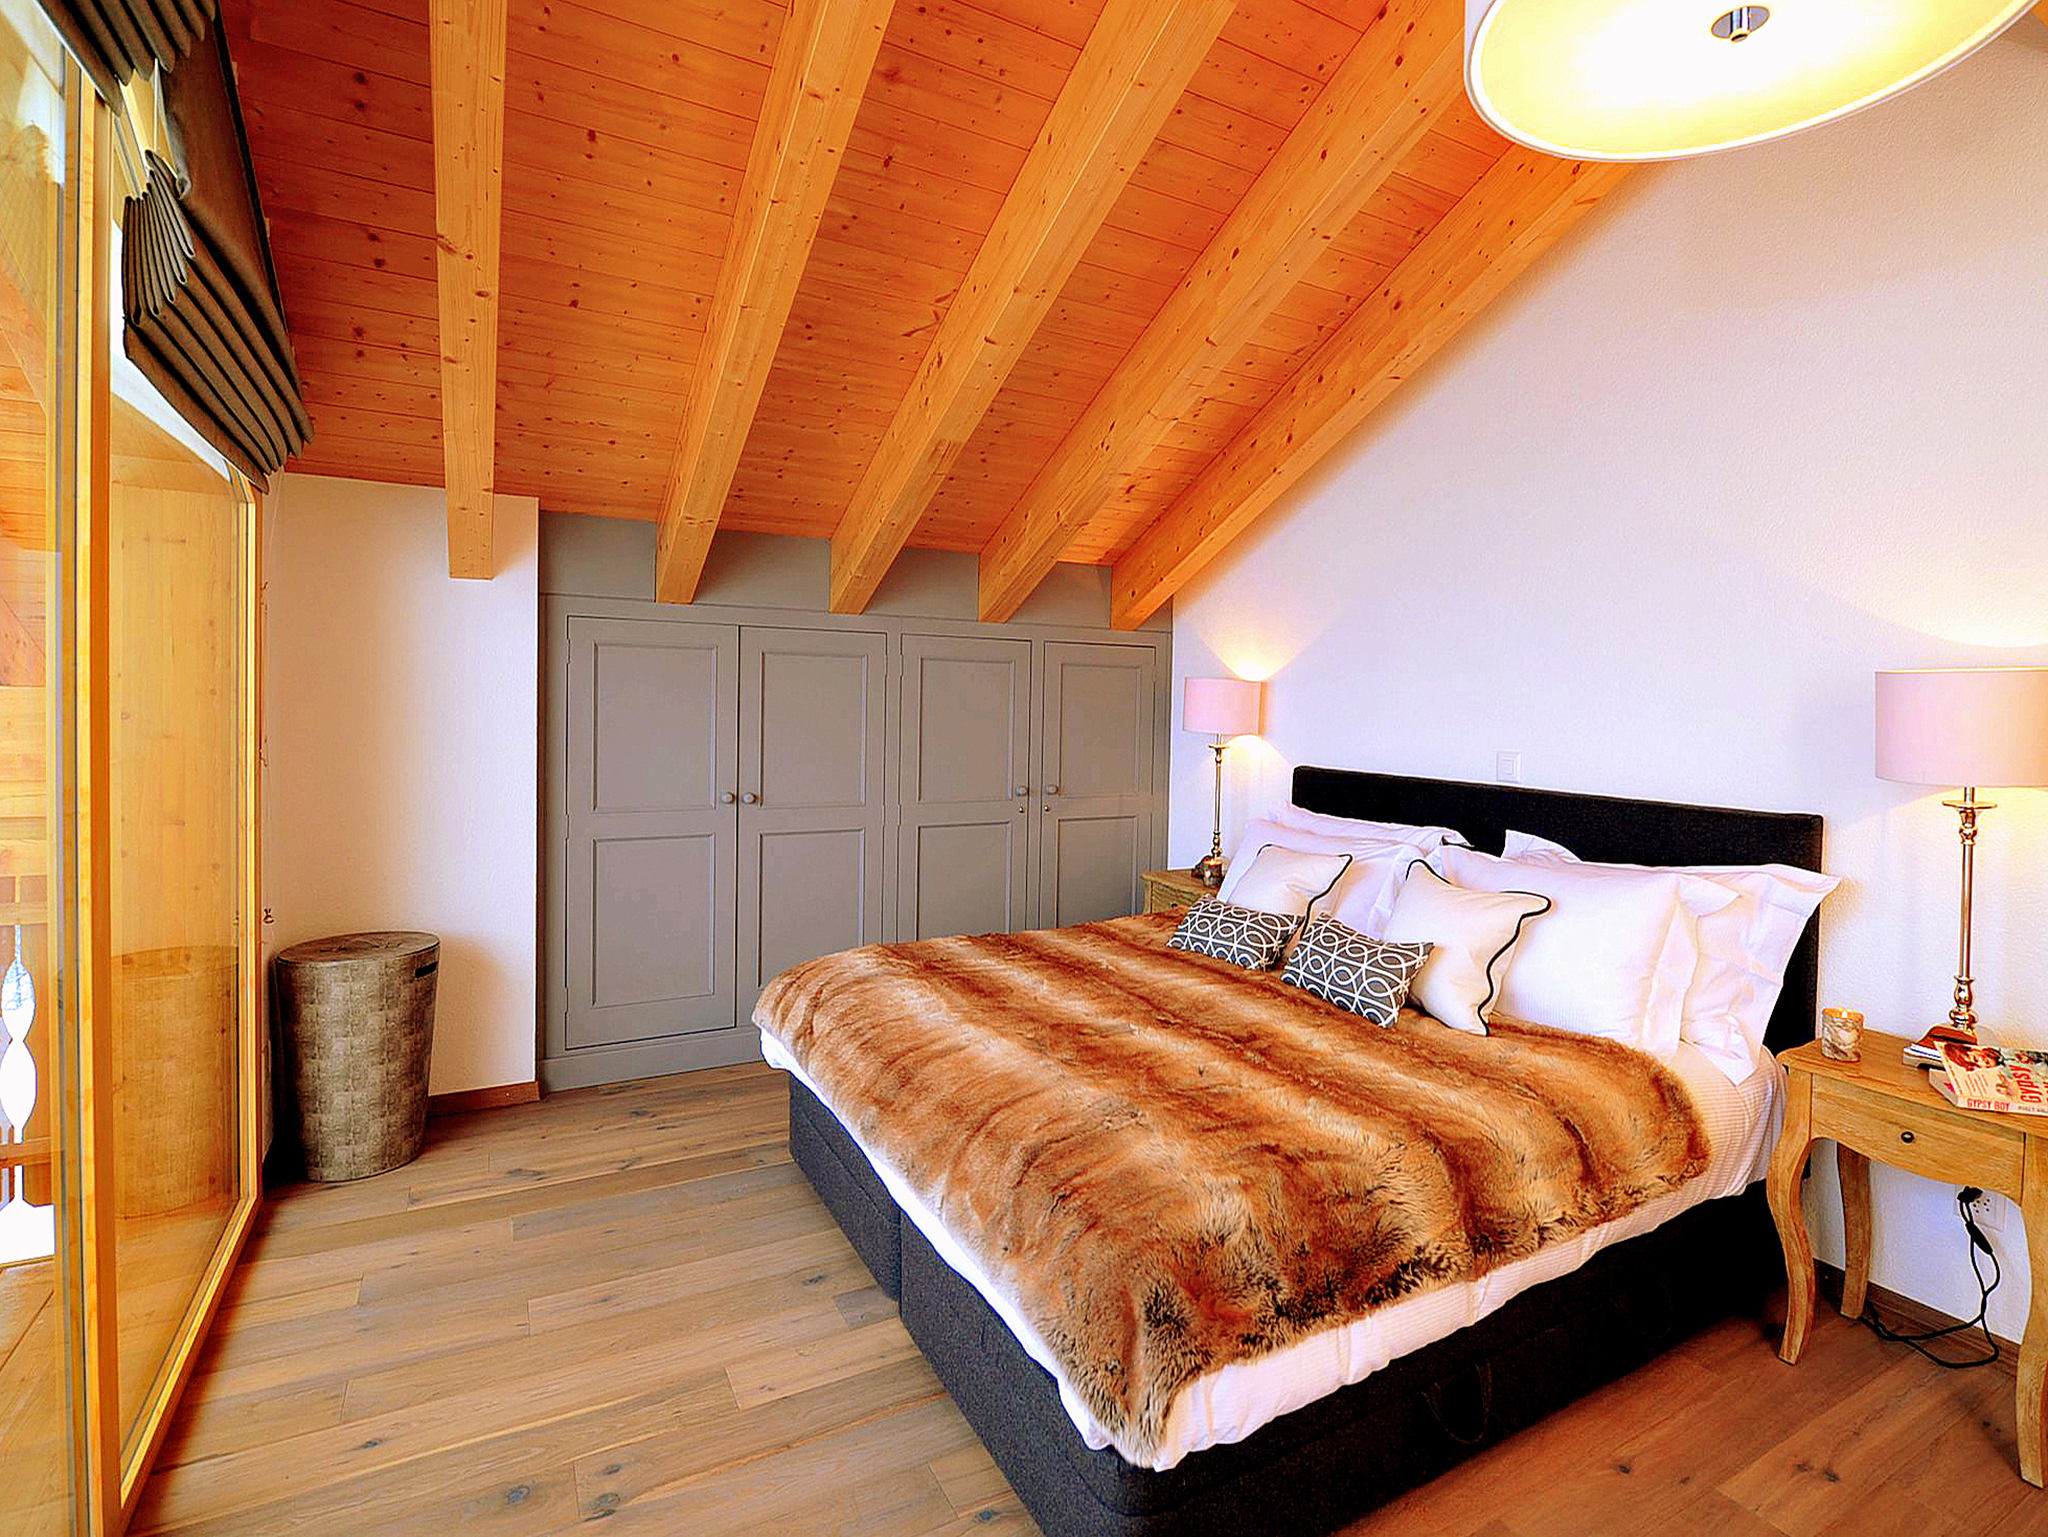 Chalet Dolomiti Dream - chambre (exemple)